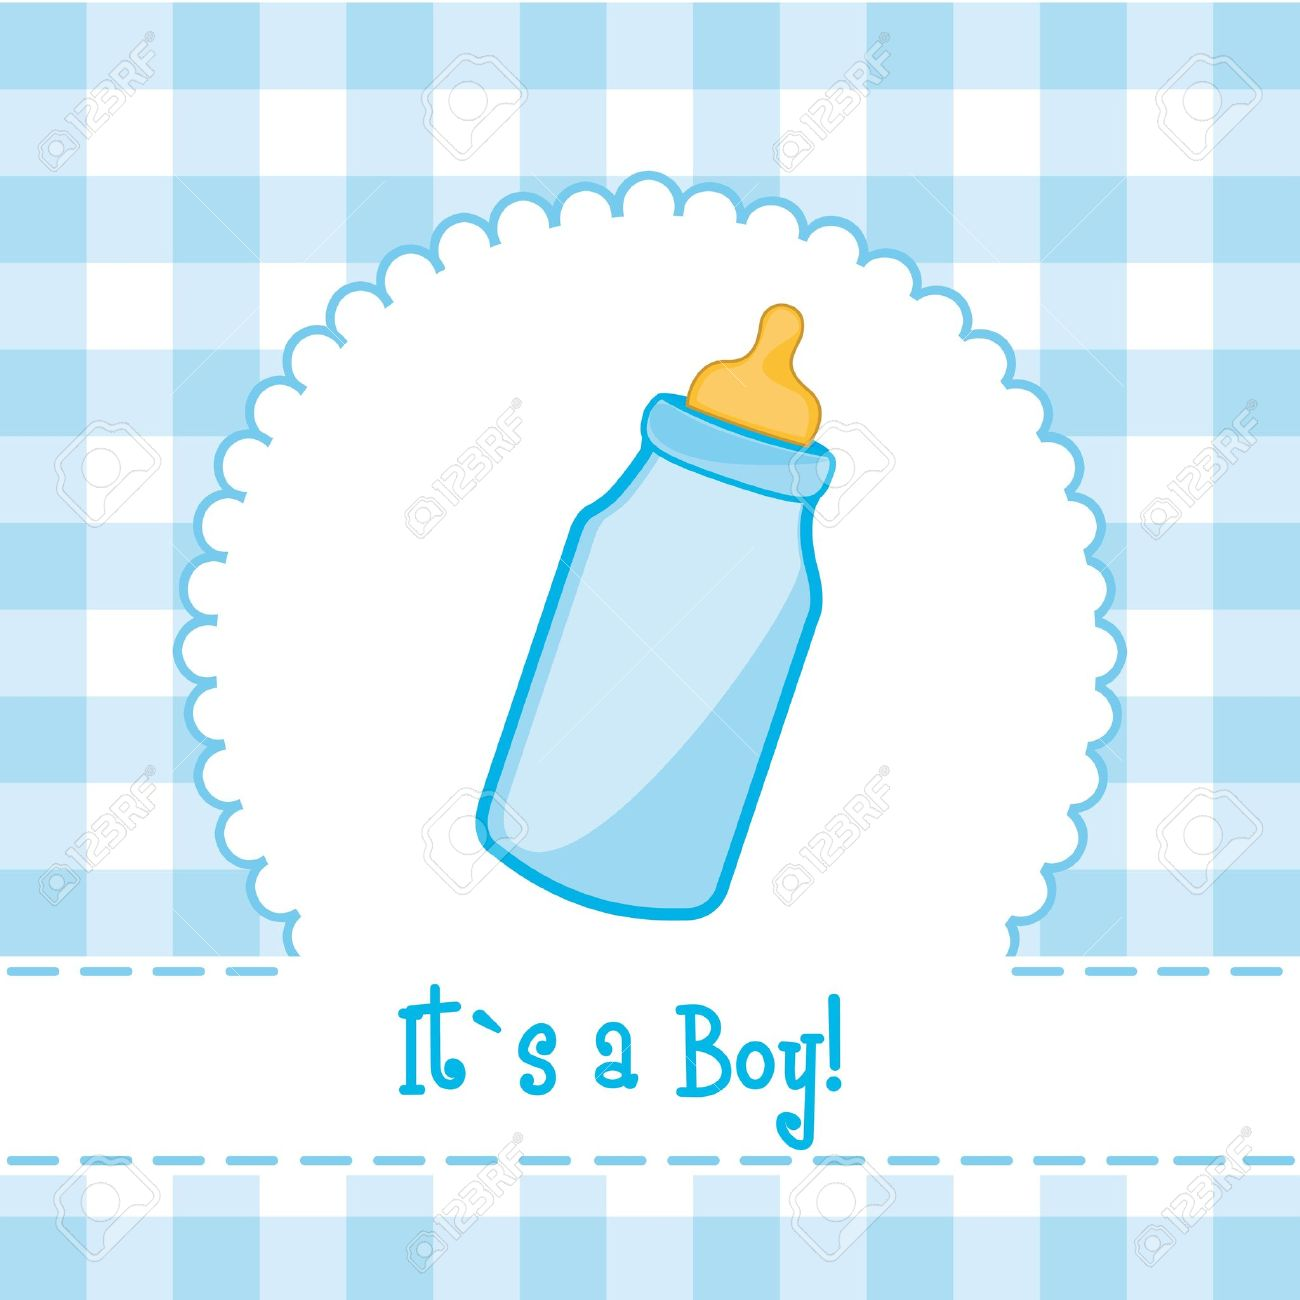 175 Its A Boy free clipart.